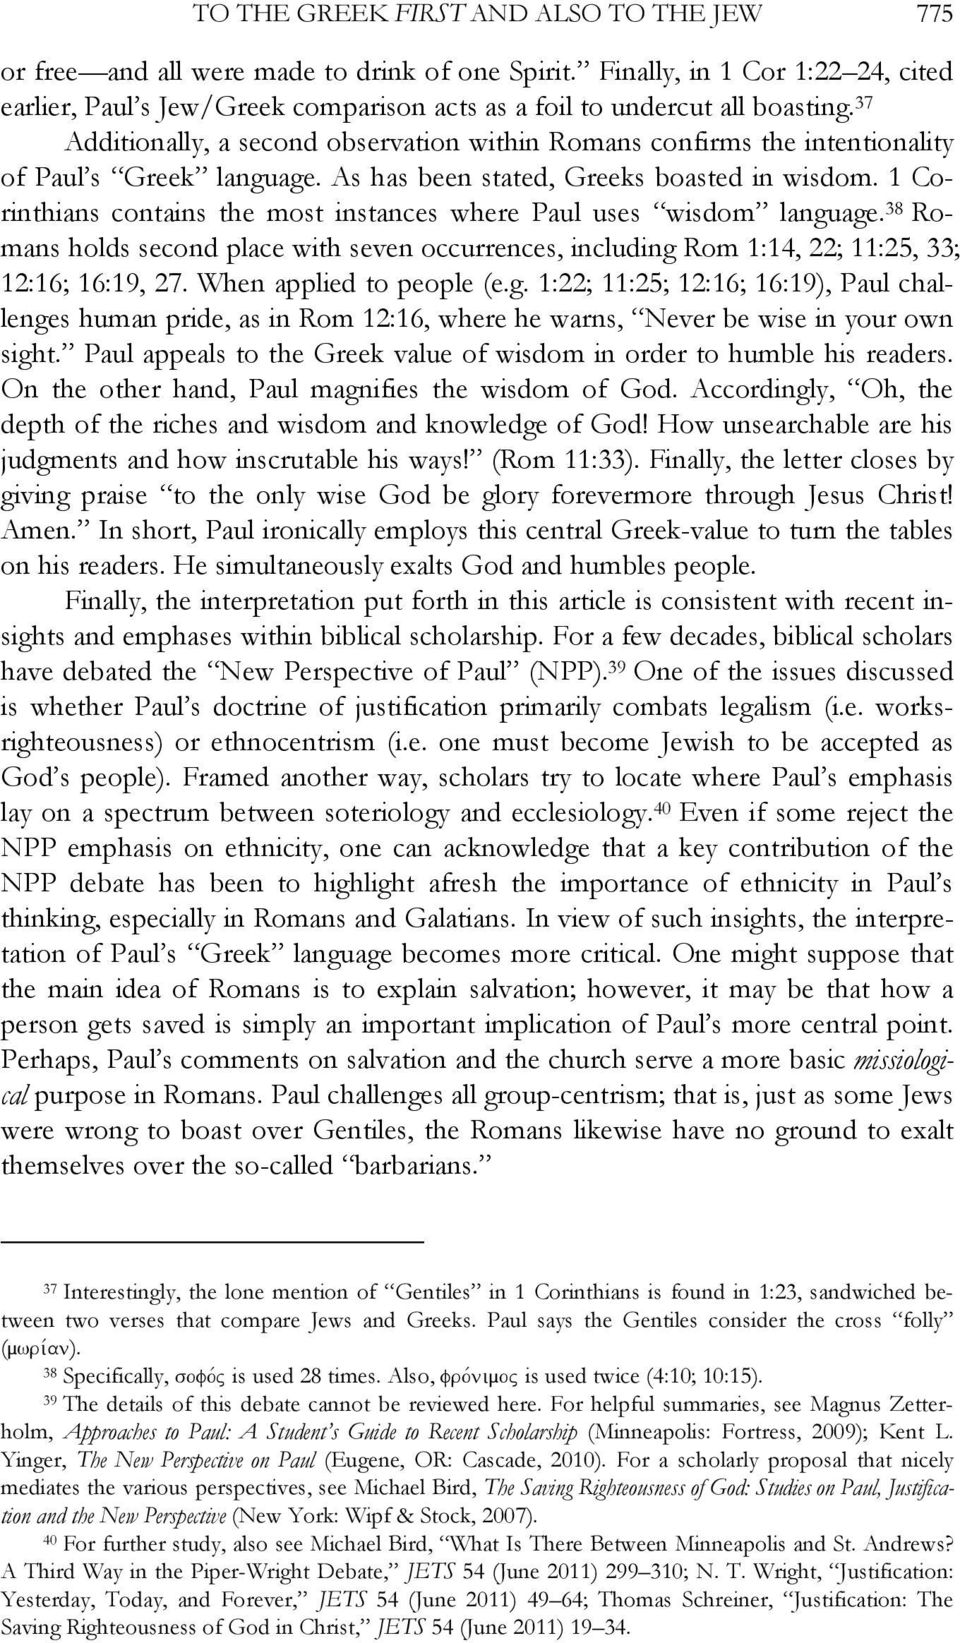 37 Additionally, a second observation within Romans confirms the intentionality of Paul s Greek language. As has been stated, Greeks boasted in wisdom.